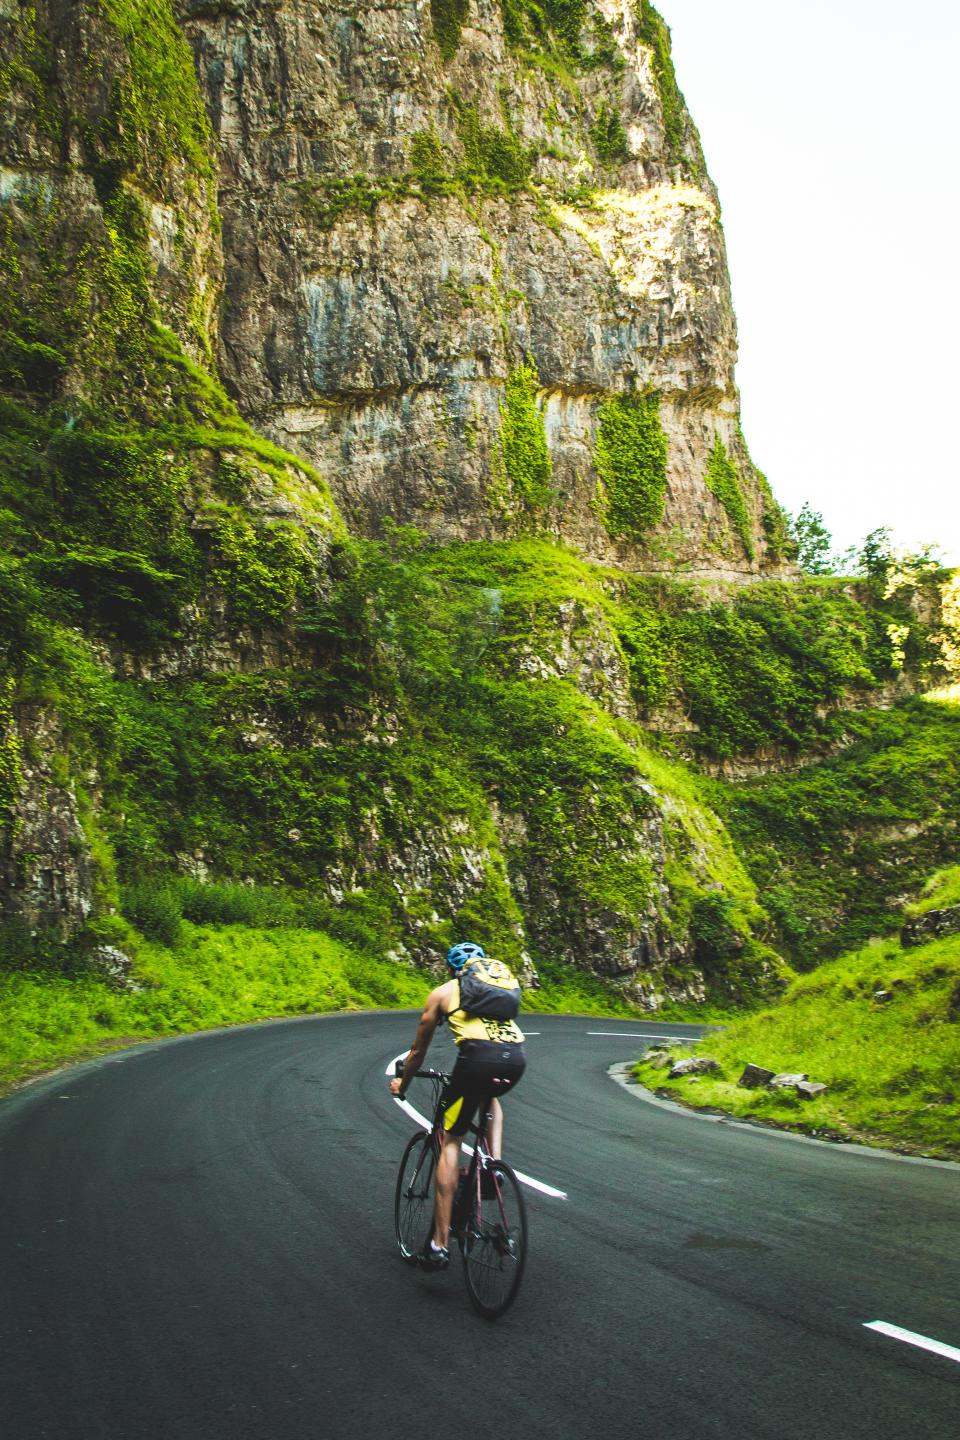 cyclist bike bicycle racing road street pavement fitness exercise guy man people backpack mountains cliffs green grass sports